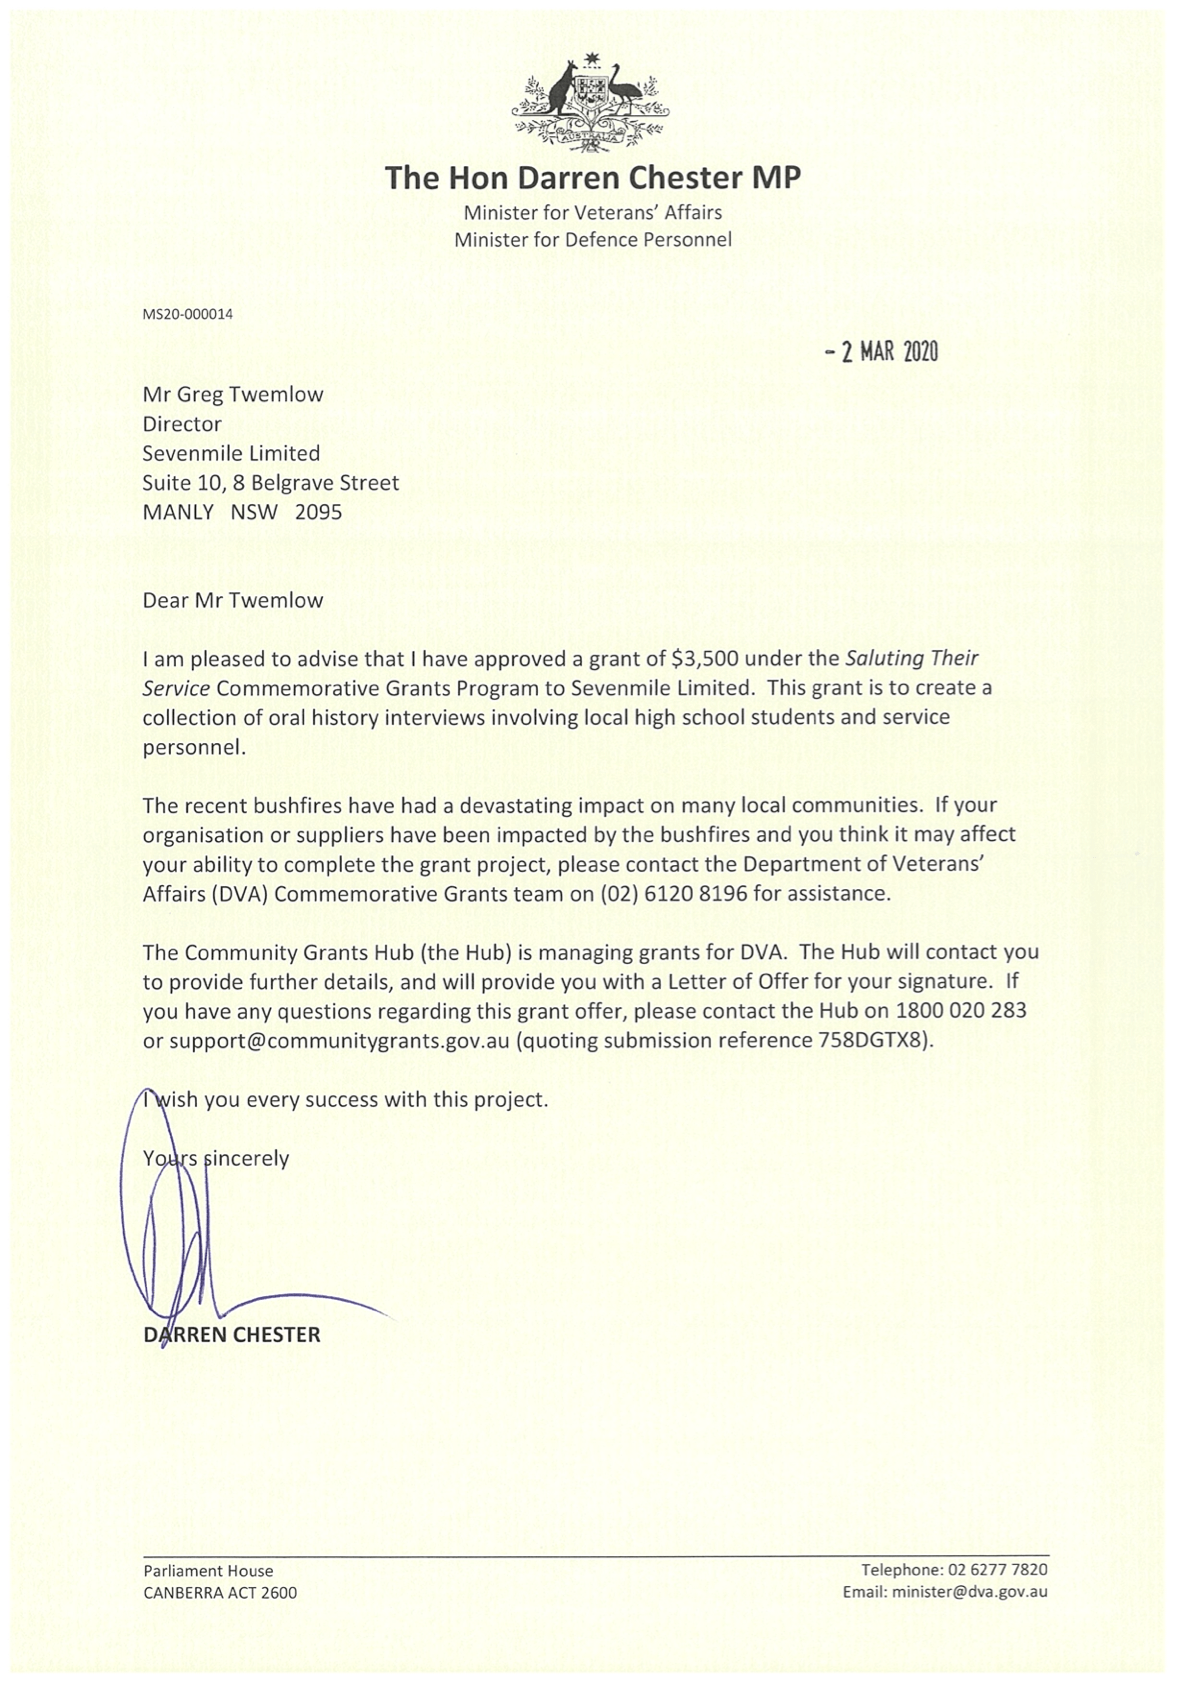 letter from The Hon Darren Chester, Minister for Veterans Affairs confirming the awarding of a grant to SEVENmile Venture Lab